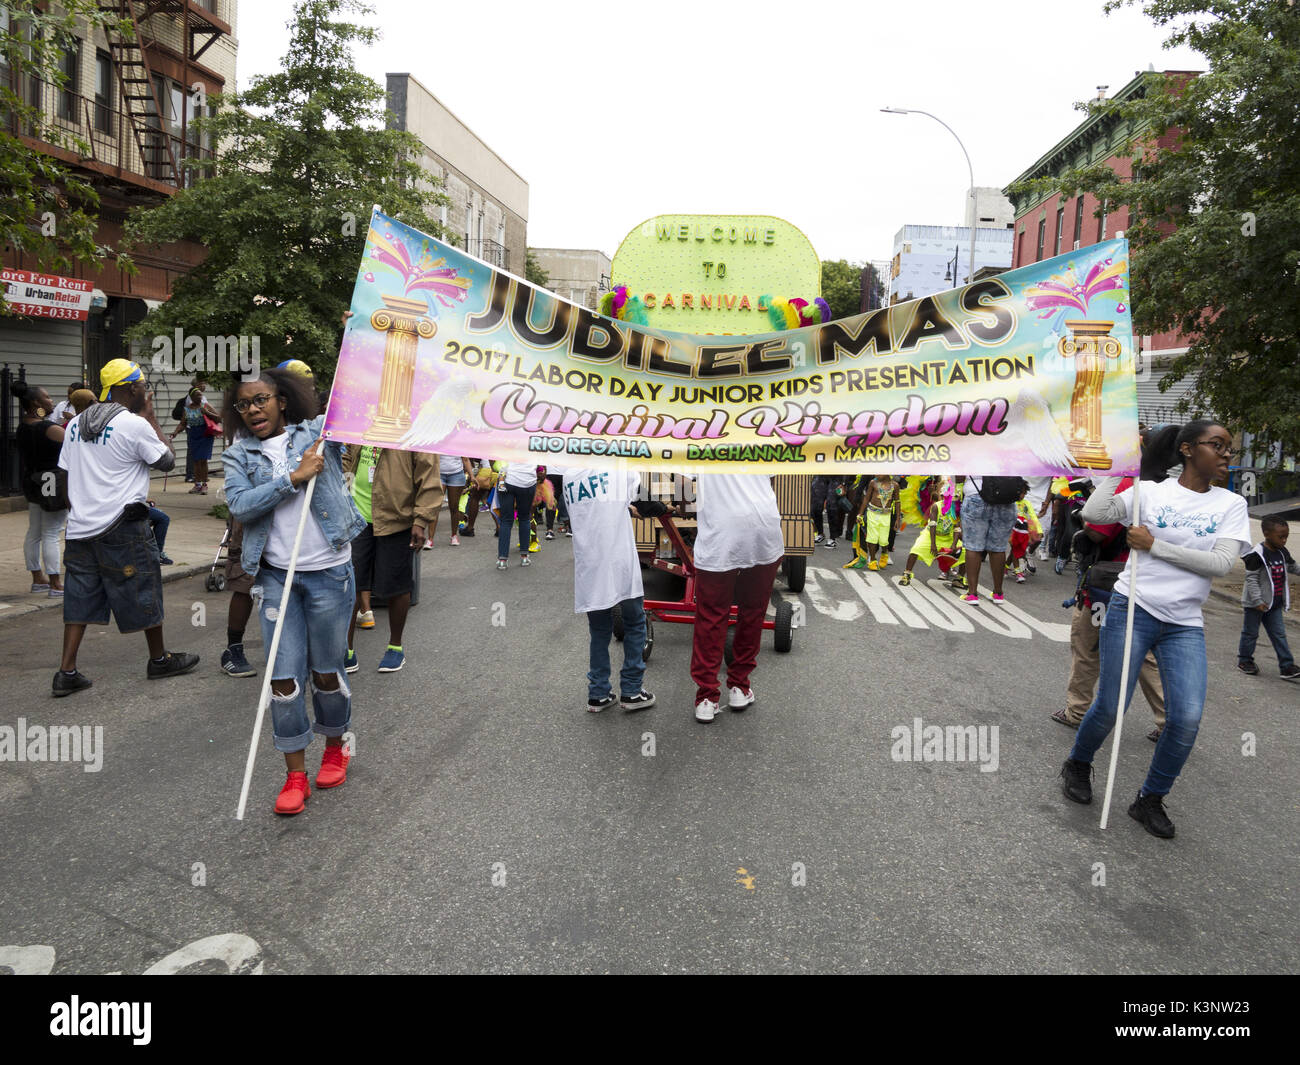 Brooklyn, USA. 2nd September, 2017. The 50th annual Caribbean Junior Carnival in Brooklyn, NY, USA. - Stock Image